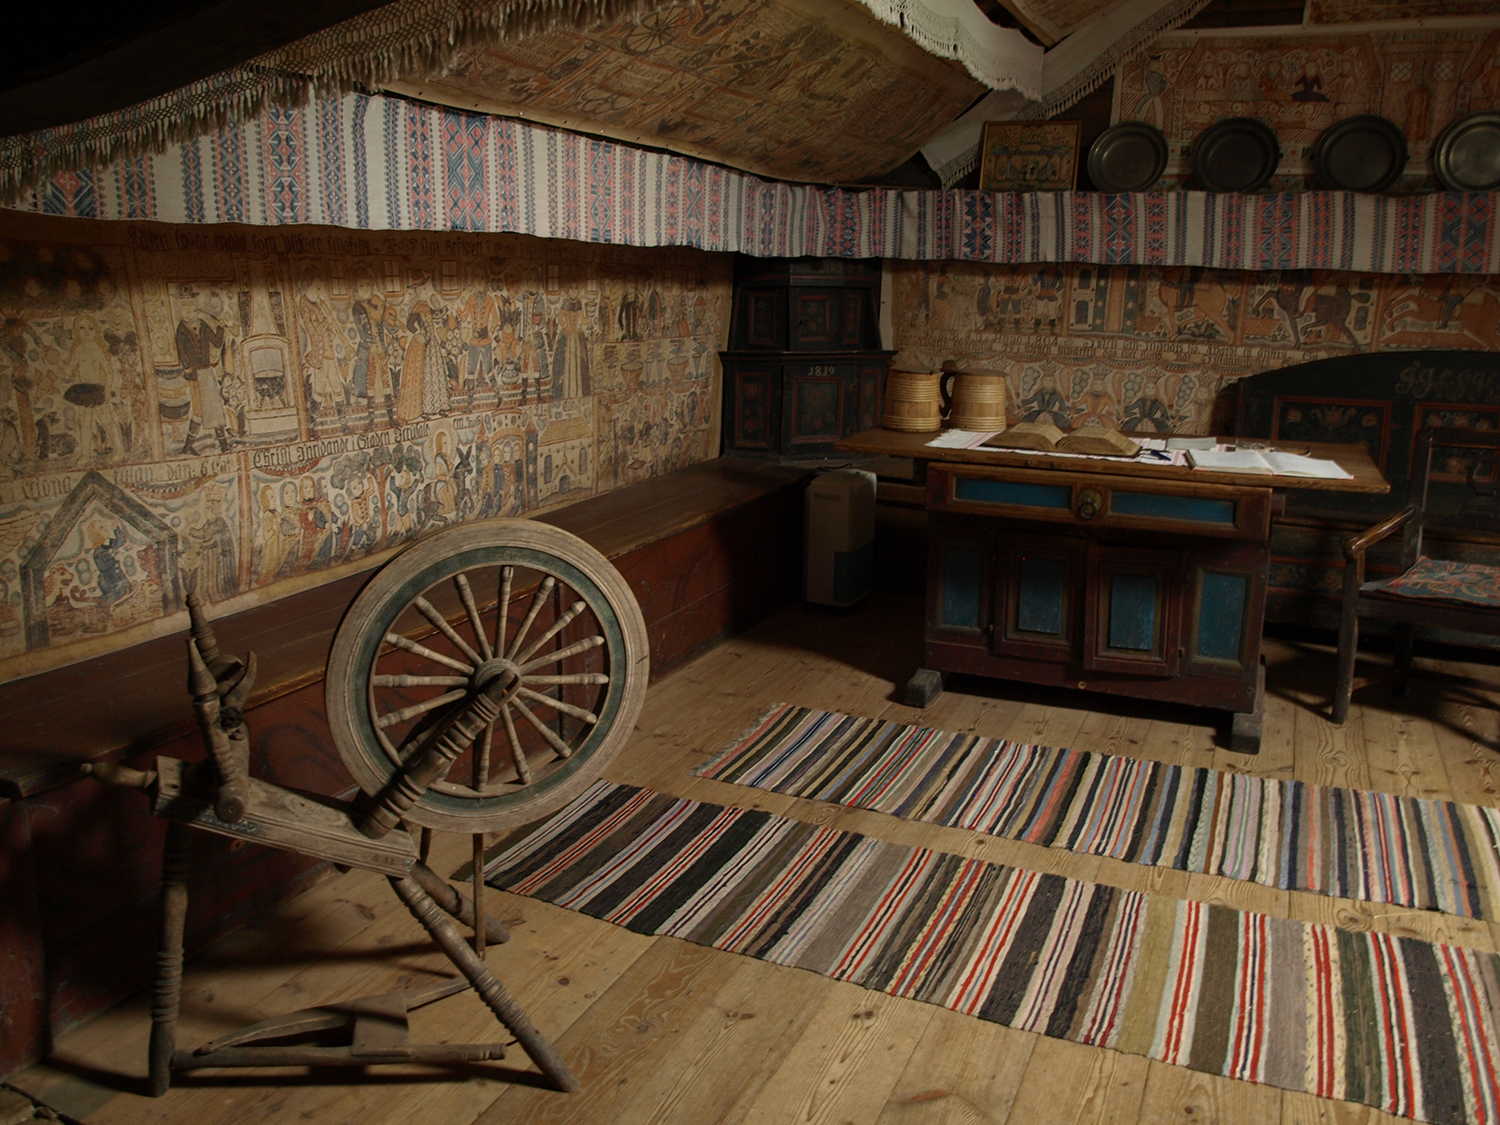 Interior of a ryggåstugga with facsimiles of peasant paintings showing how they would have hung on special occasions.